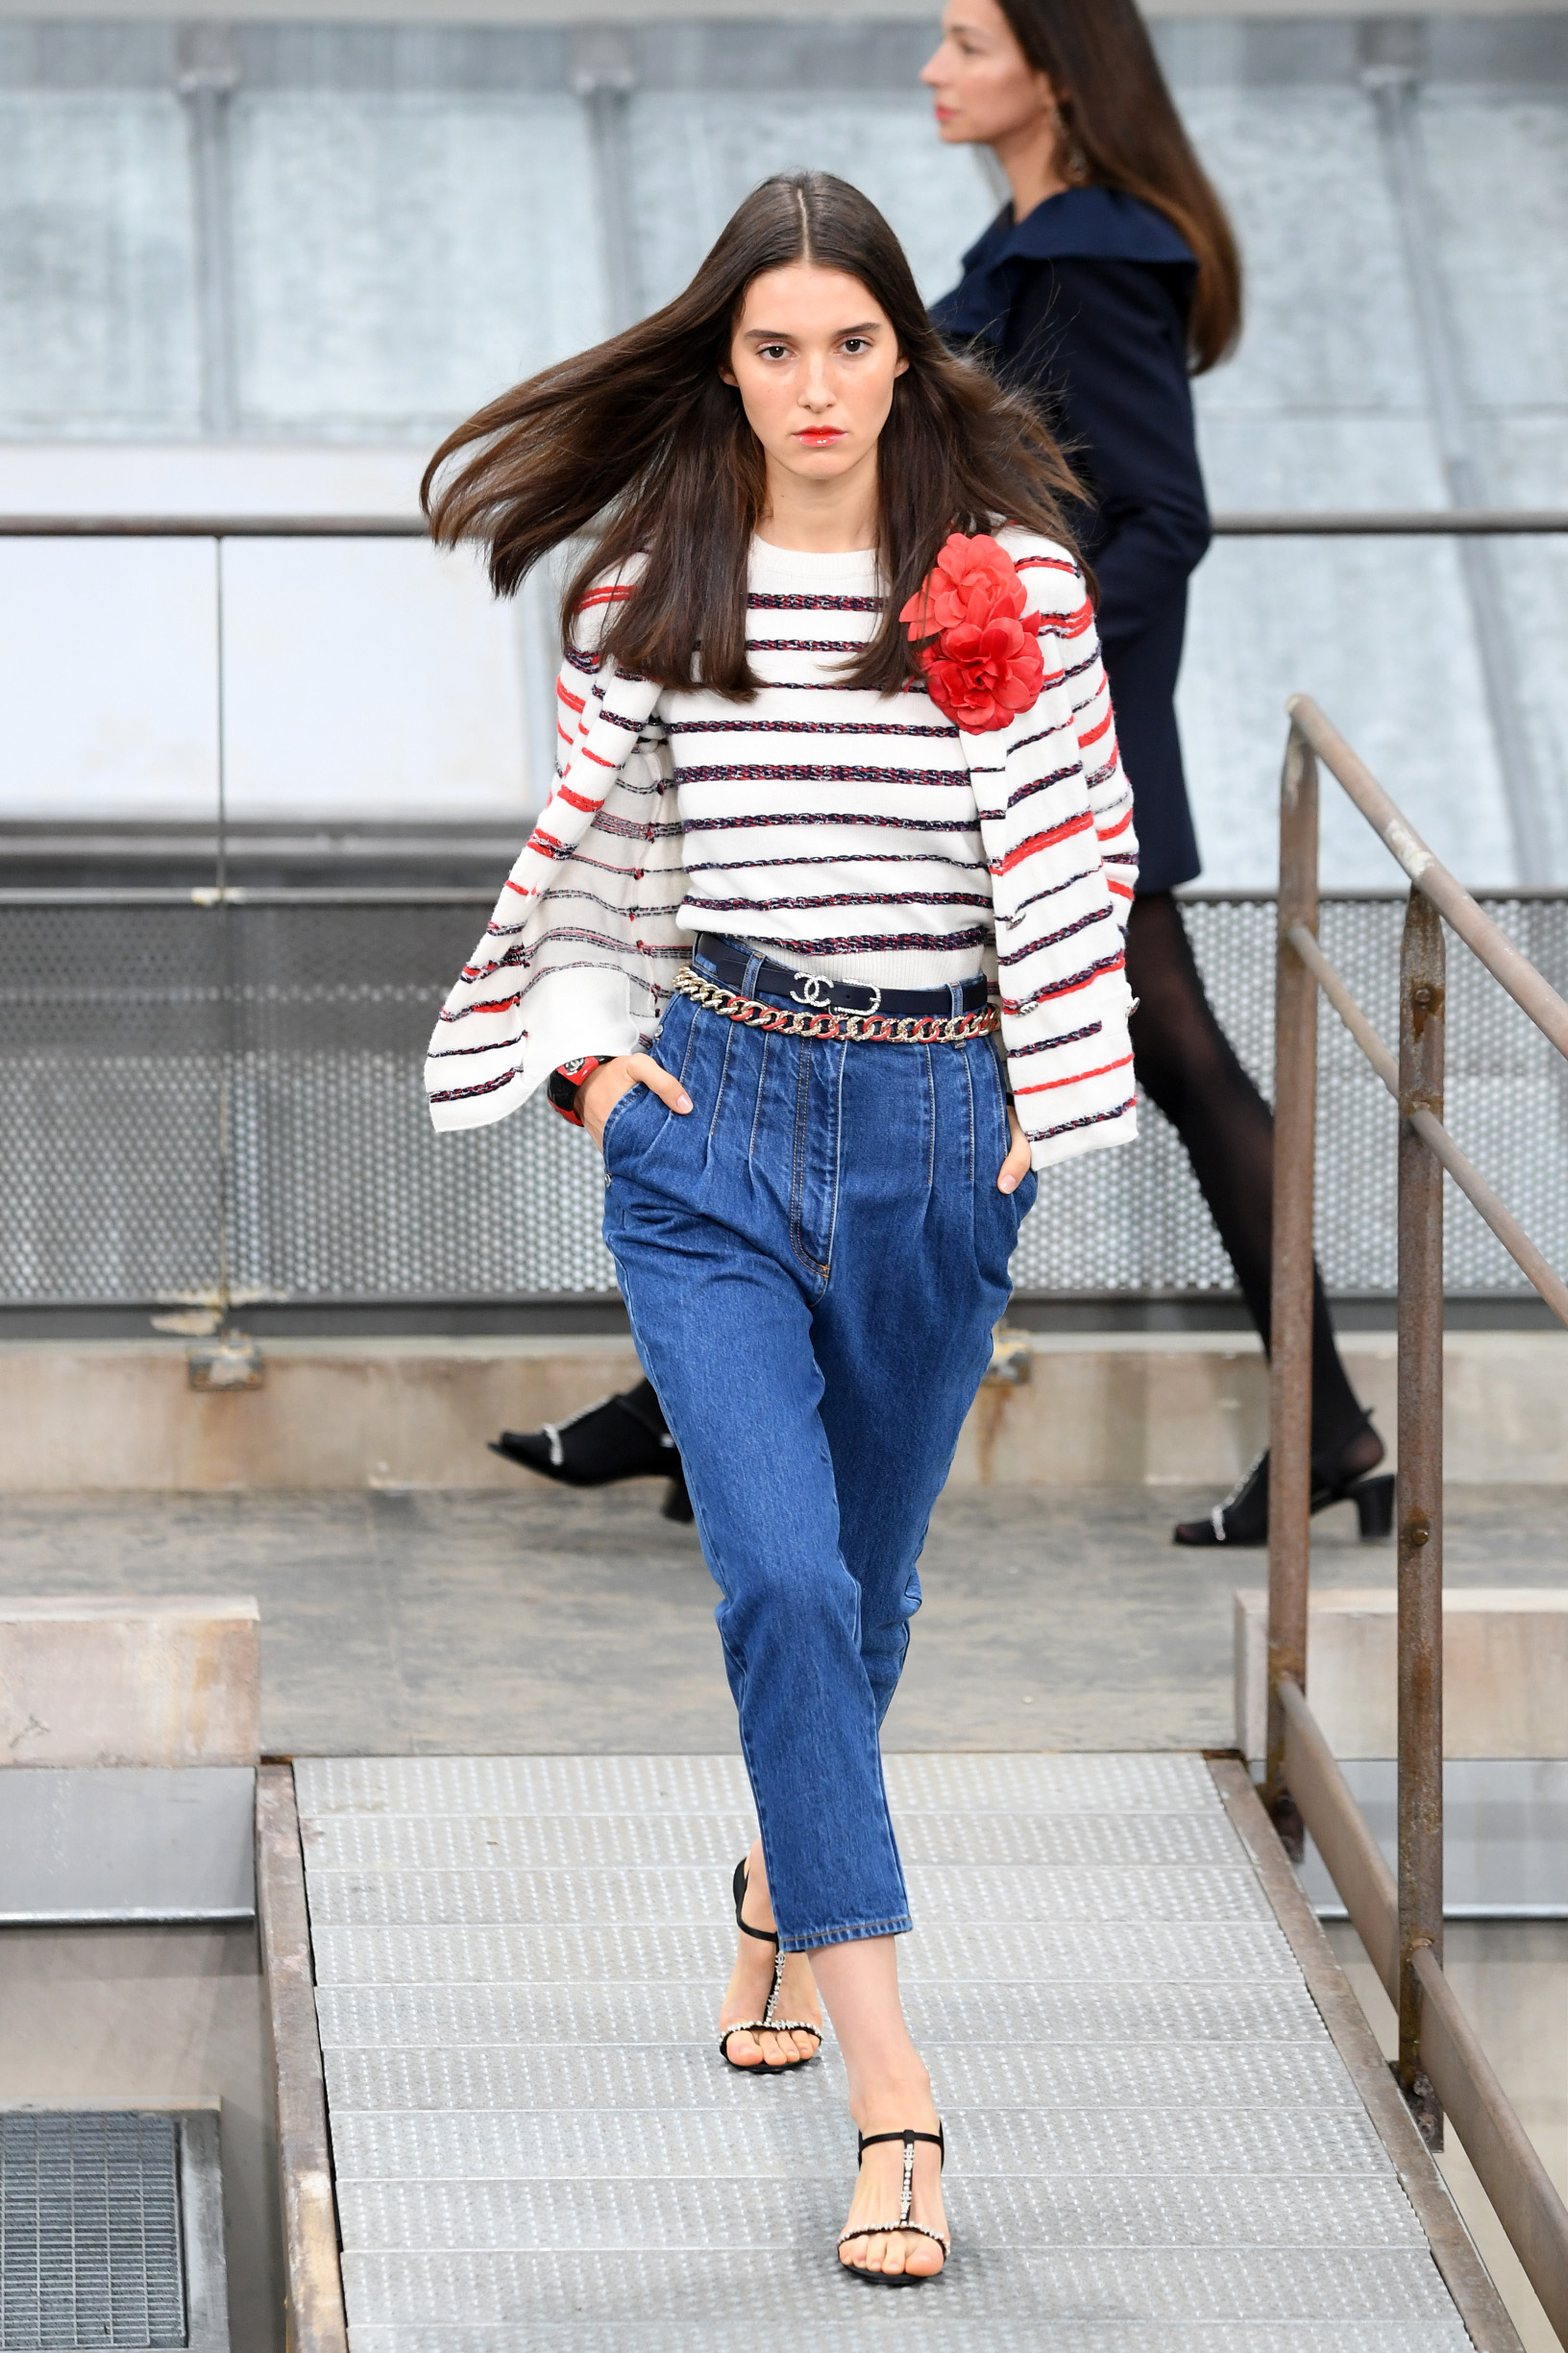 PARIS, FRANCE - OCTOBER 01: A model walks the runway during the Chanel Womenswear Spring/Summer 2020 show as part of Paris Fashion Week on October 01, 2019 in Paris, France. (Photo by Pascal Le Segretain/Getty Images)